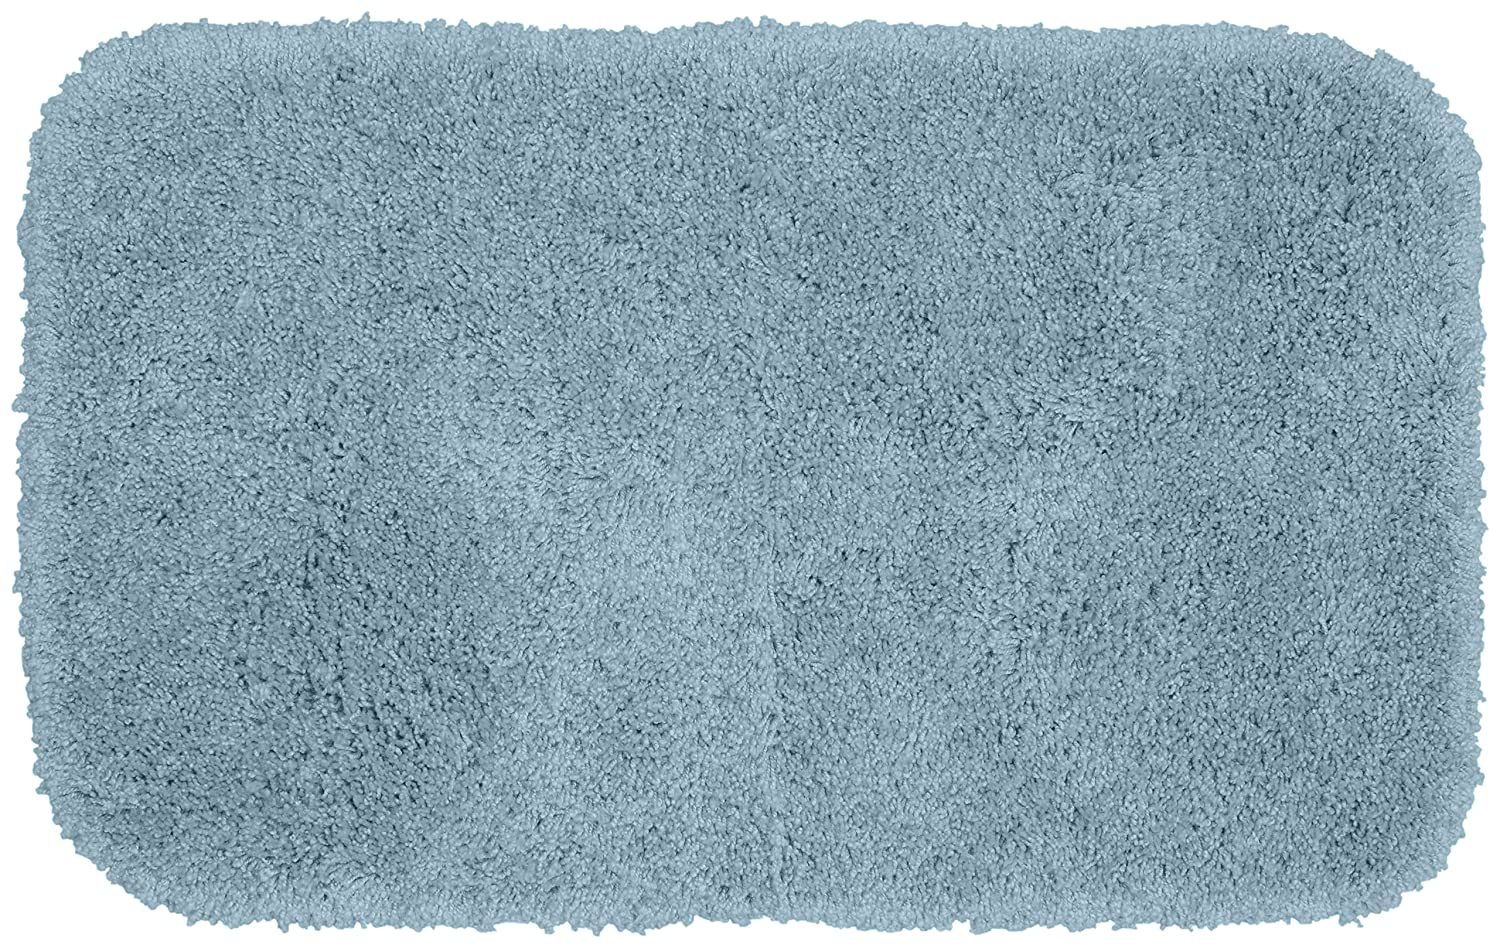 Basin bluee 24-Inch by 40-Inch Garland Rug BA100W3P02I6 Serendipity Bath Rug Set, 3-Piece Set, Sea Foam